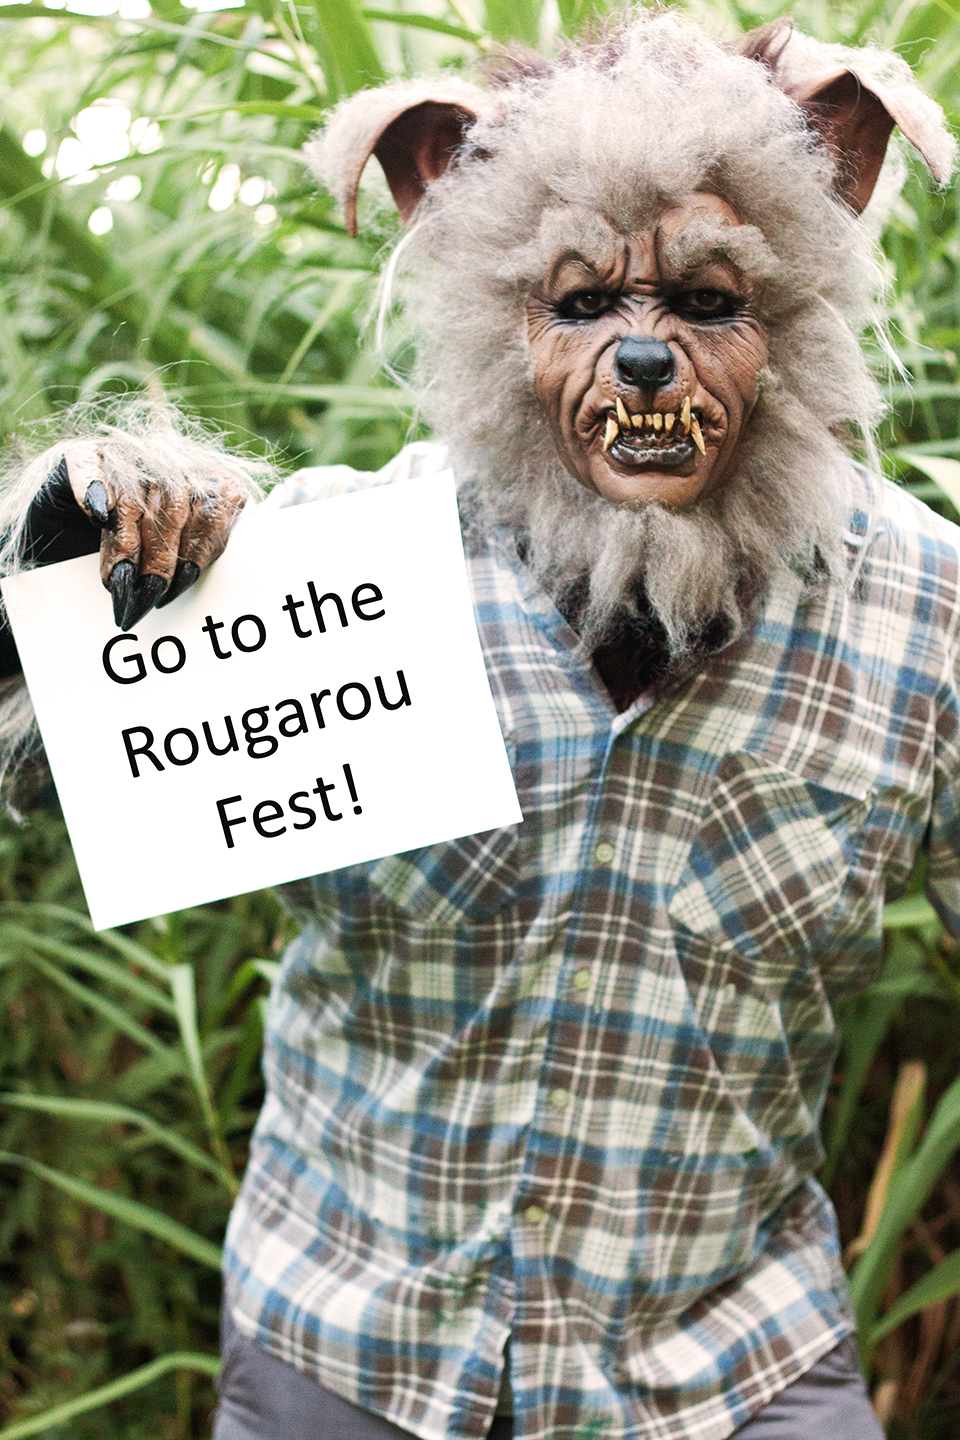 About the Rougarou, Go to the Rougarou Fest